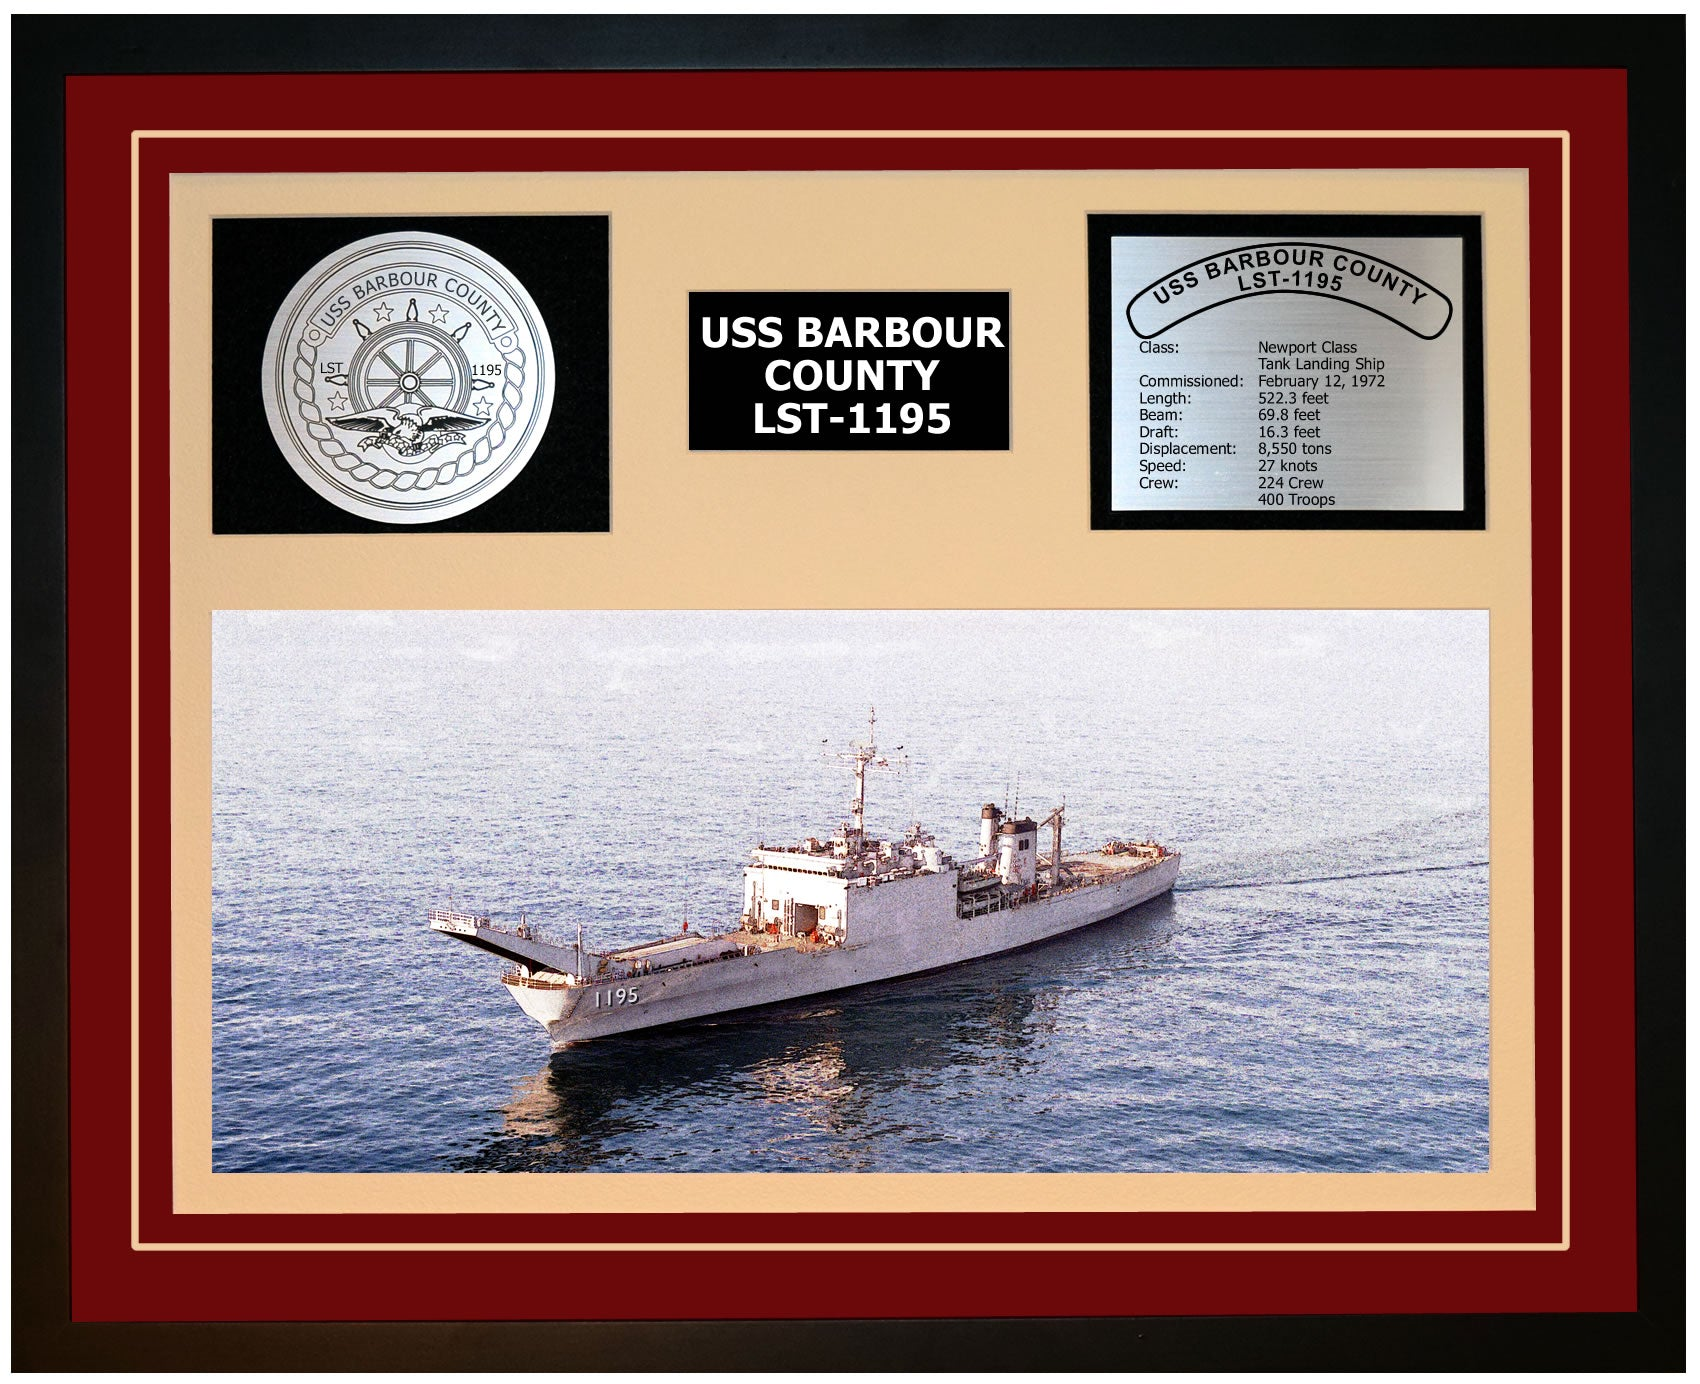 USS BARBOUR COUNTY LST-1195 Framed Navy Ship Display Burgundy